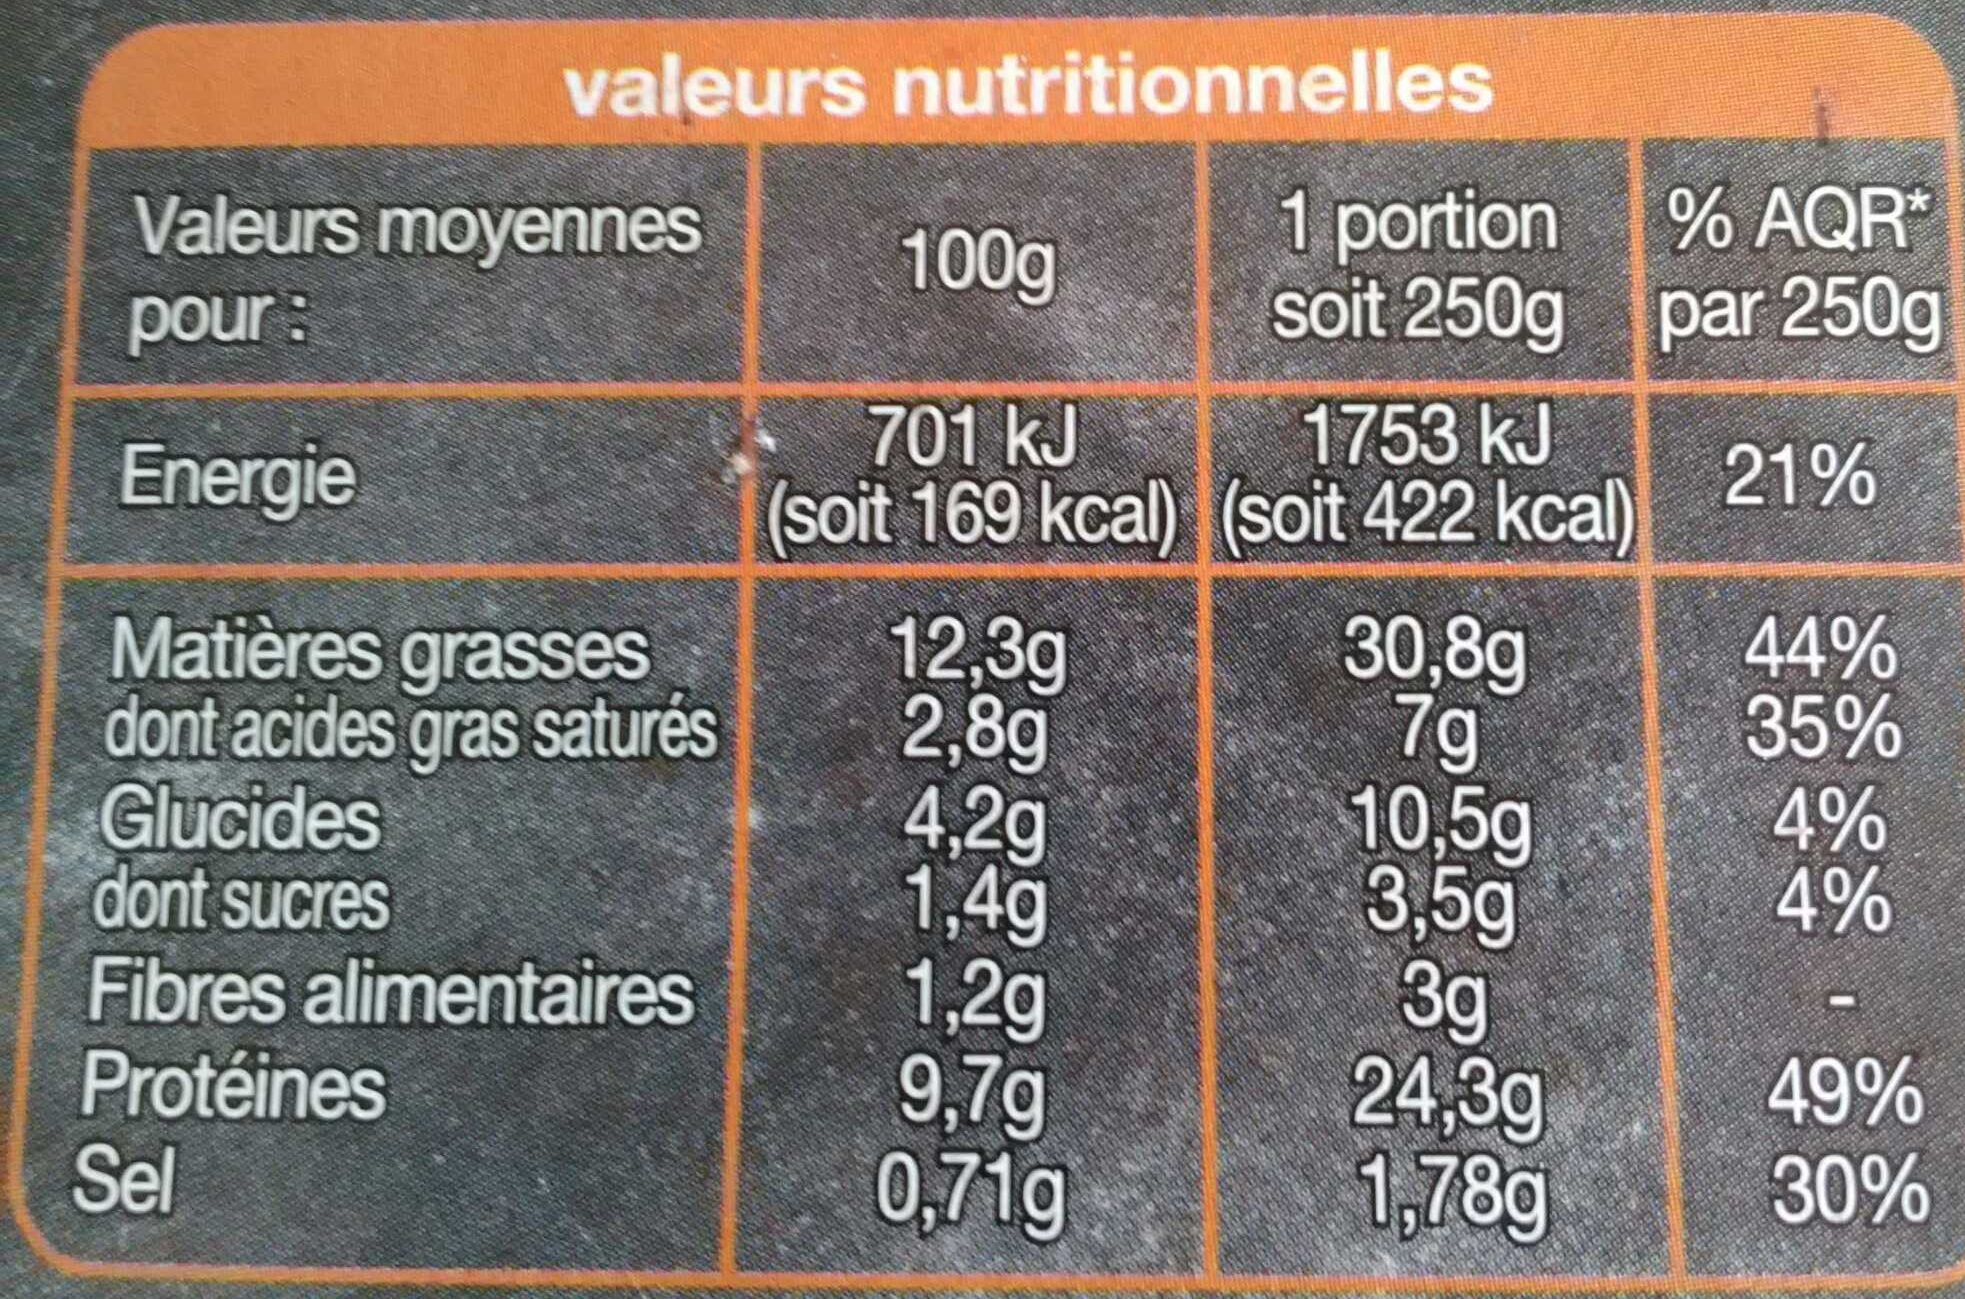 Salade César Auchan - Nutrition facts